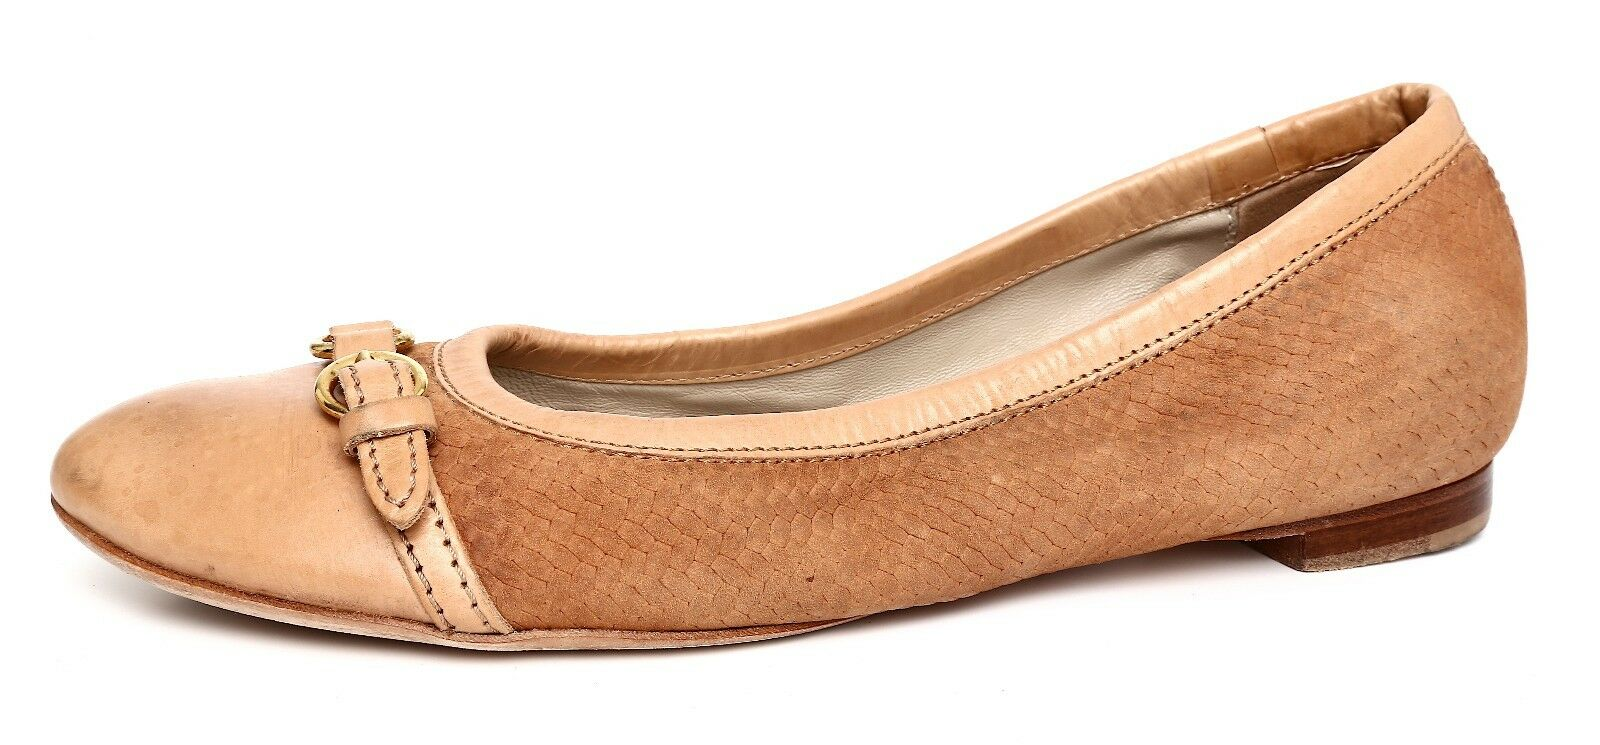 Attilio Giusti Leombruni Women's Slip On Tan Leather Flats Sz 39 EUR 3104